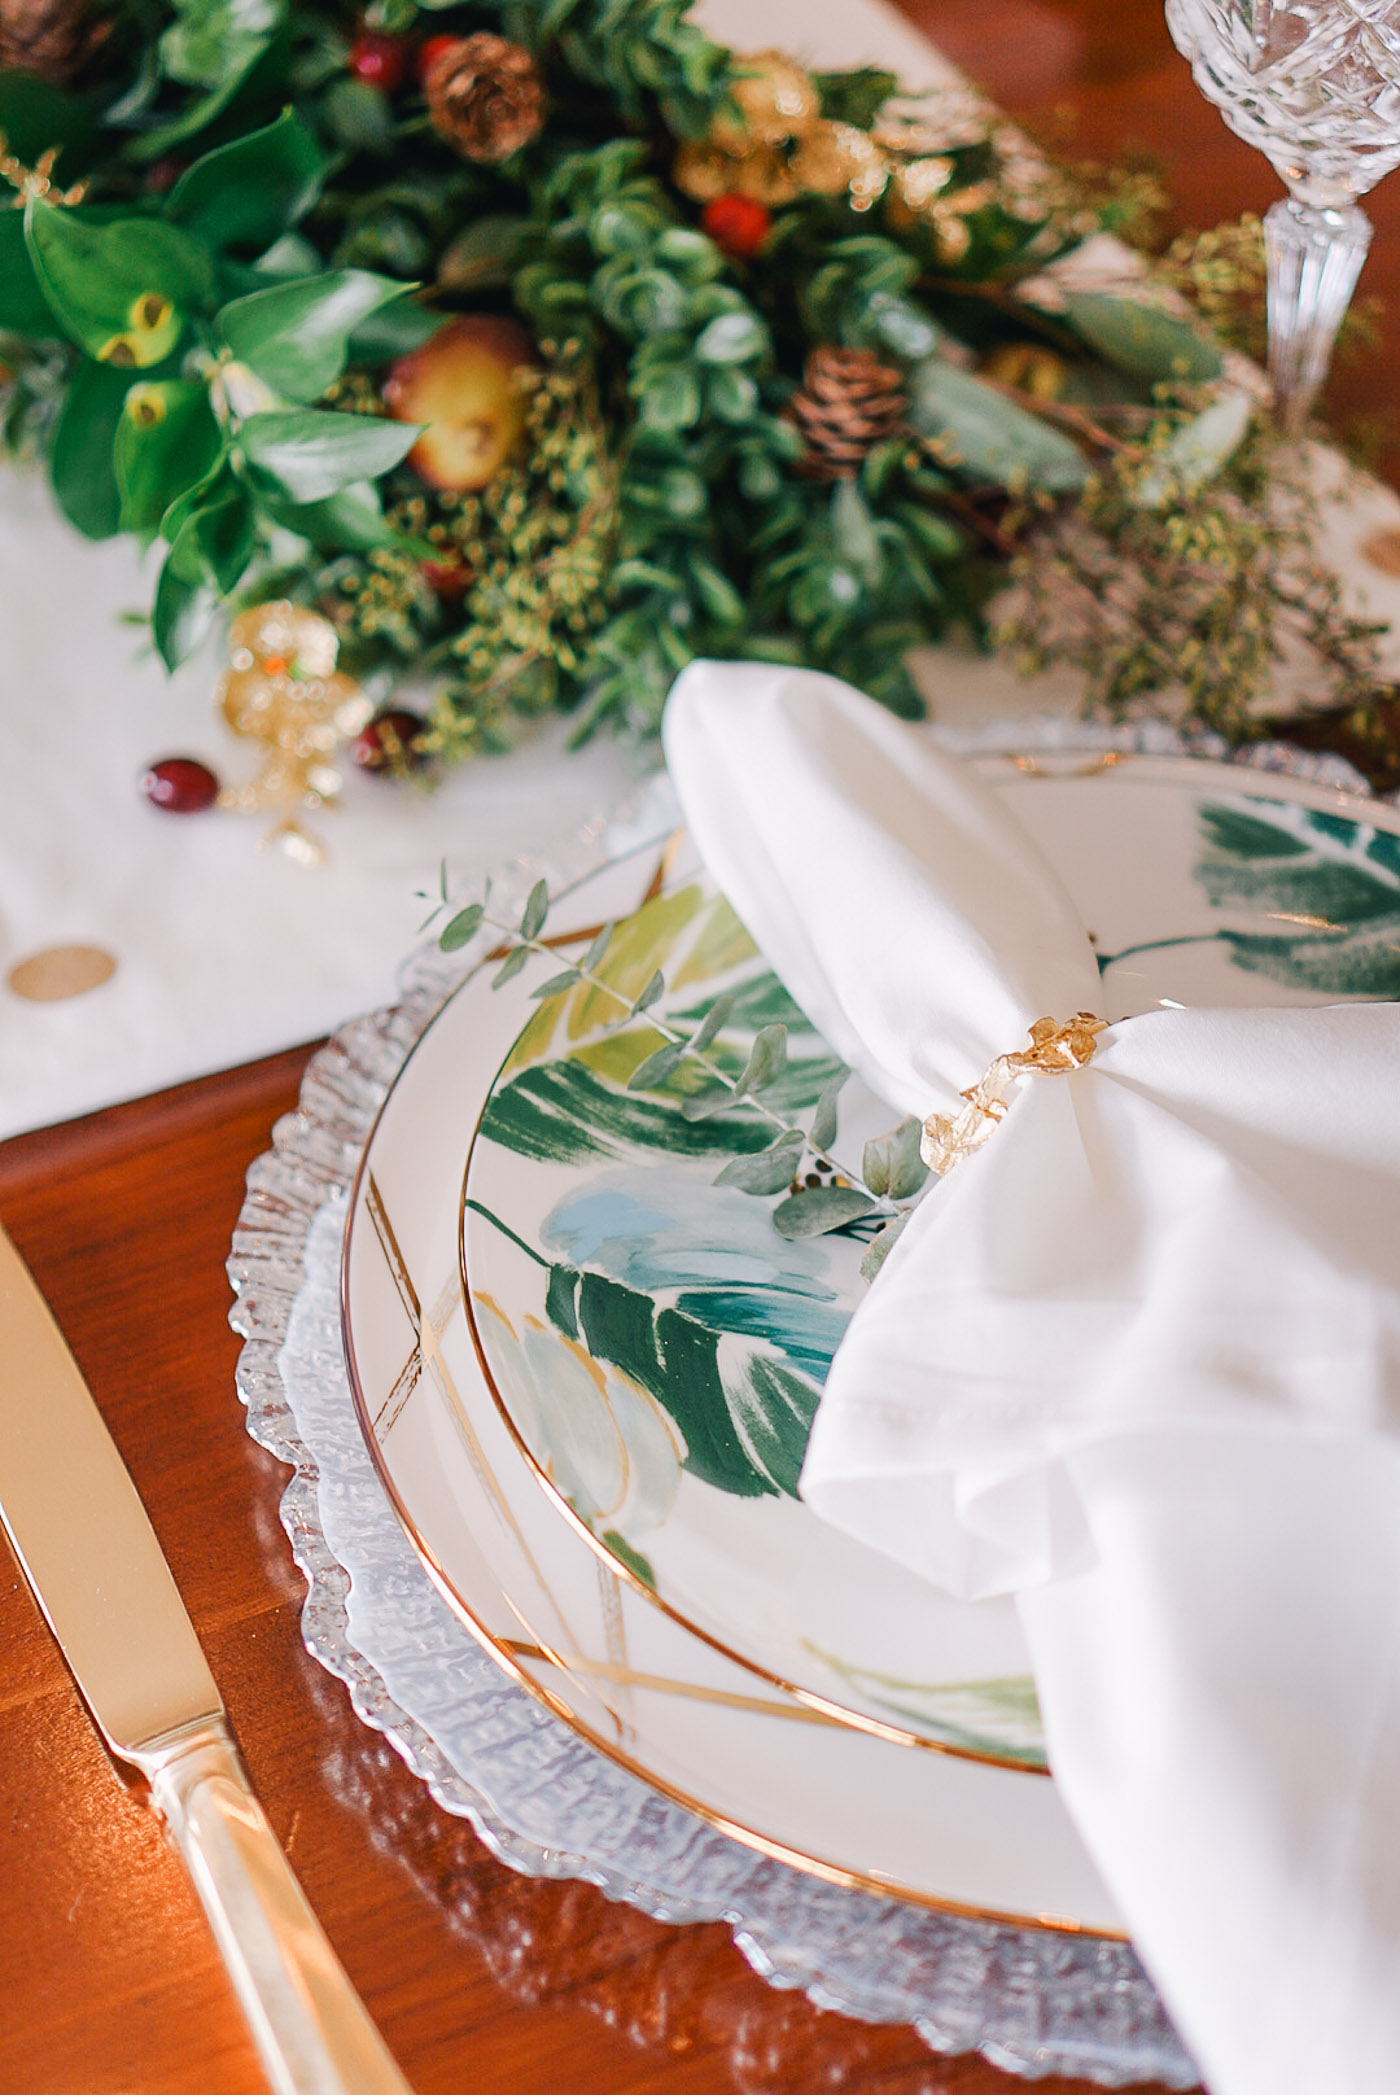 A Thanksgiving tablescape full of Fall garland and Lenox dishes by Lauren Cermak of the Southern lifestyle blog, Going For Grace.